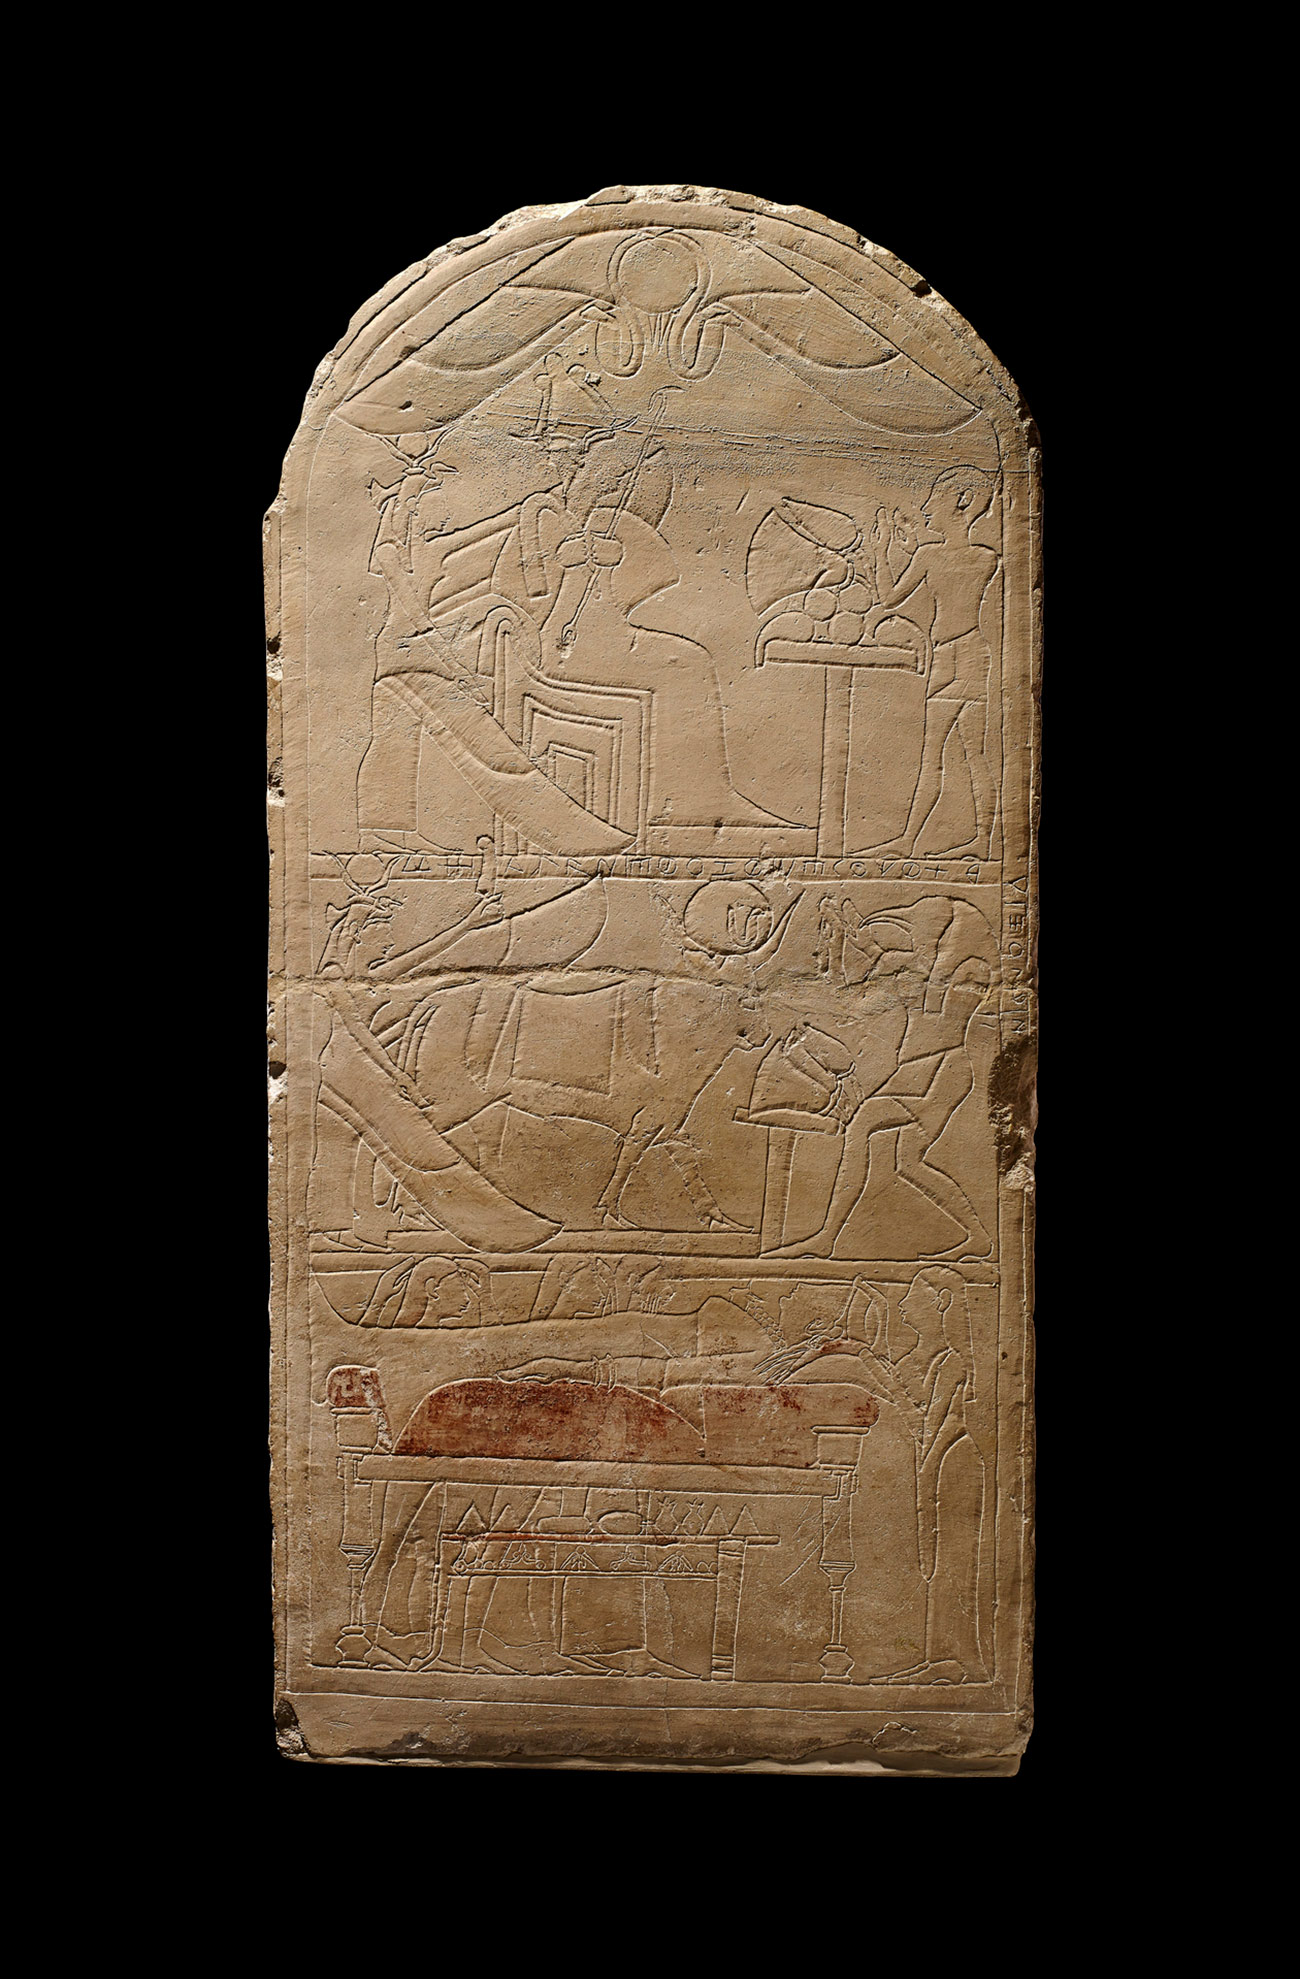 An inscribed limestone block, in the shape of a gravestone, depicts the deceased and Egyptian dieties with elegantly incised lines